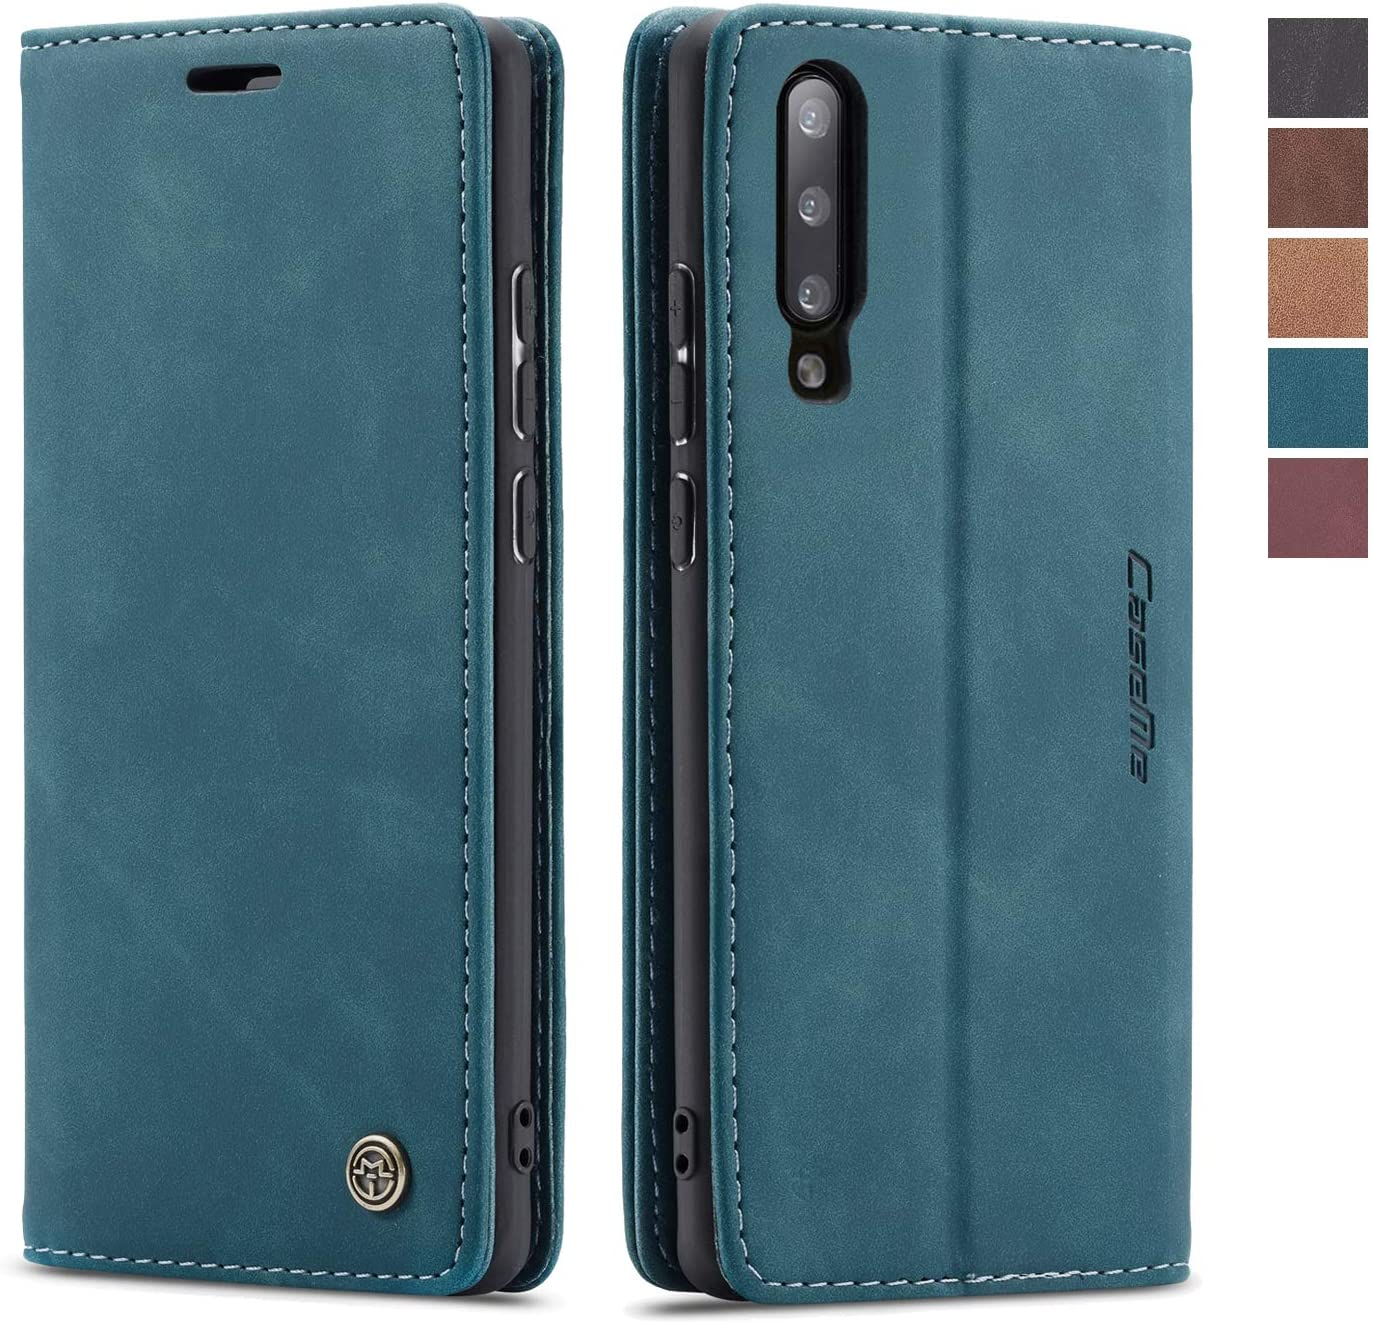 SENSKO Samsung Galaxy A50 Wallet Case,Magnetic Stand Flip Protective Cover Book Style Retro Leather Flip Cover Durable Shockproof Protective Case for Samsung Galaxy A50(Blue)